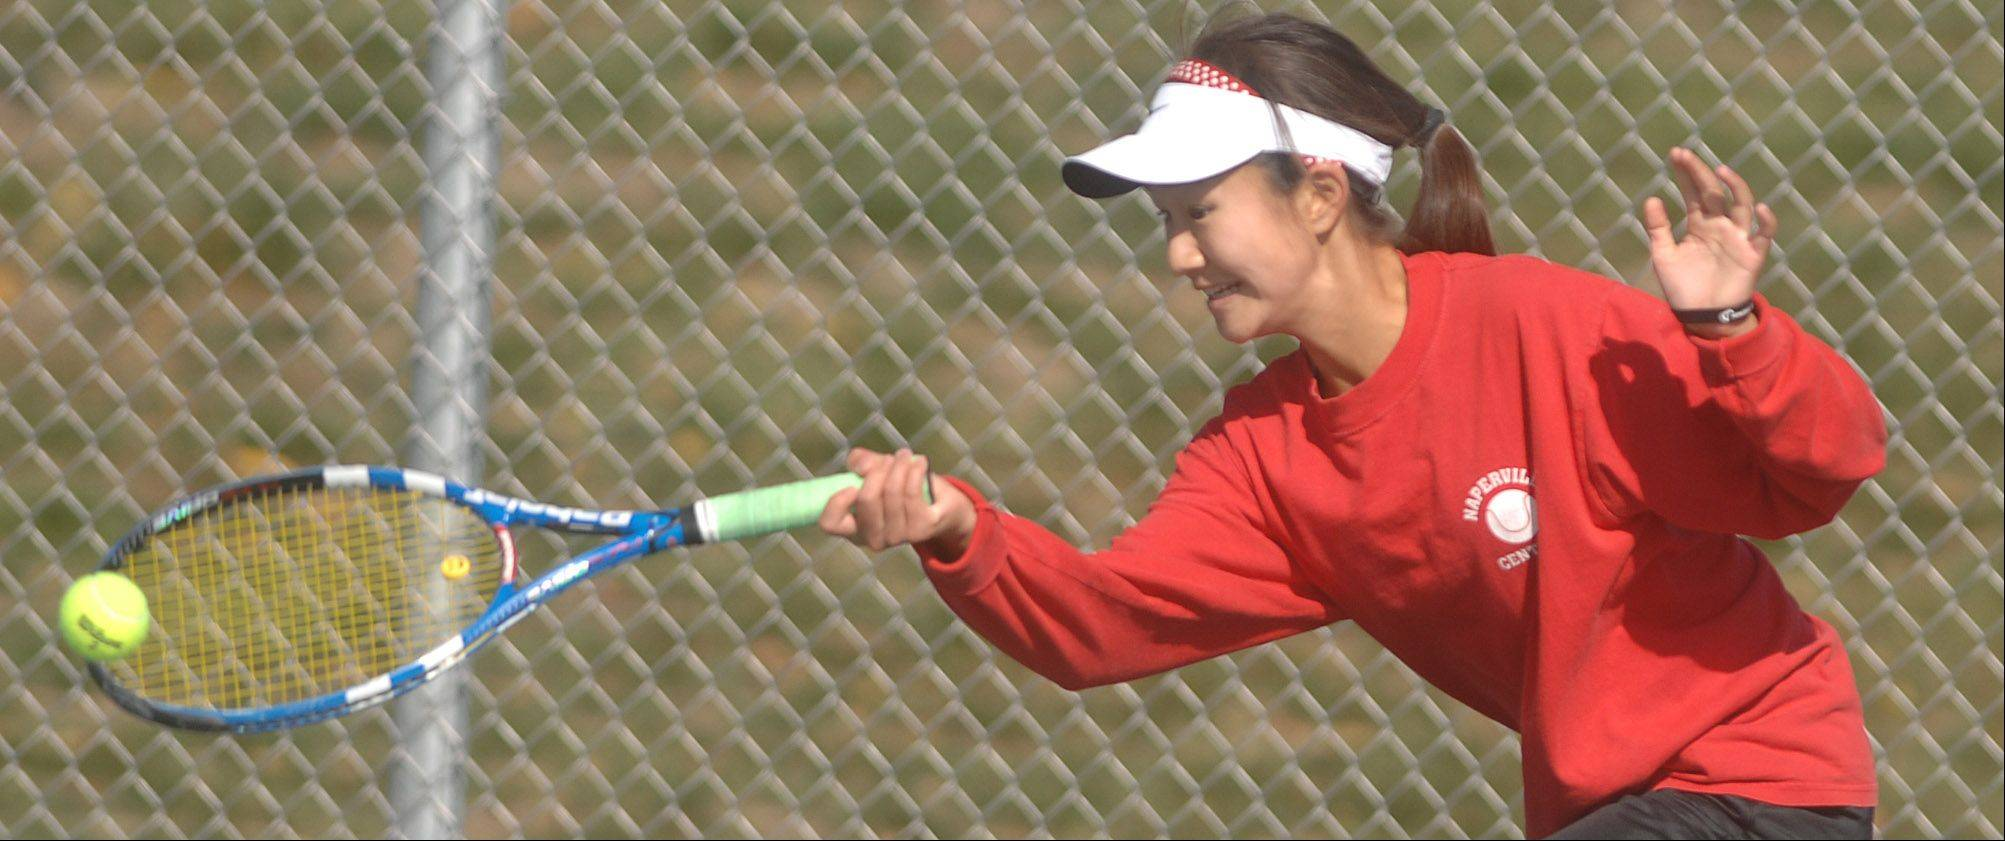 Keisha Clousing of Wheaton Warrenville South (she is not pictured) plays Tiffany Chen of Naperville during the DuPage Valley Conference girls tennis at Naperville North Saturday.